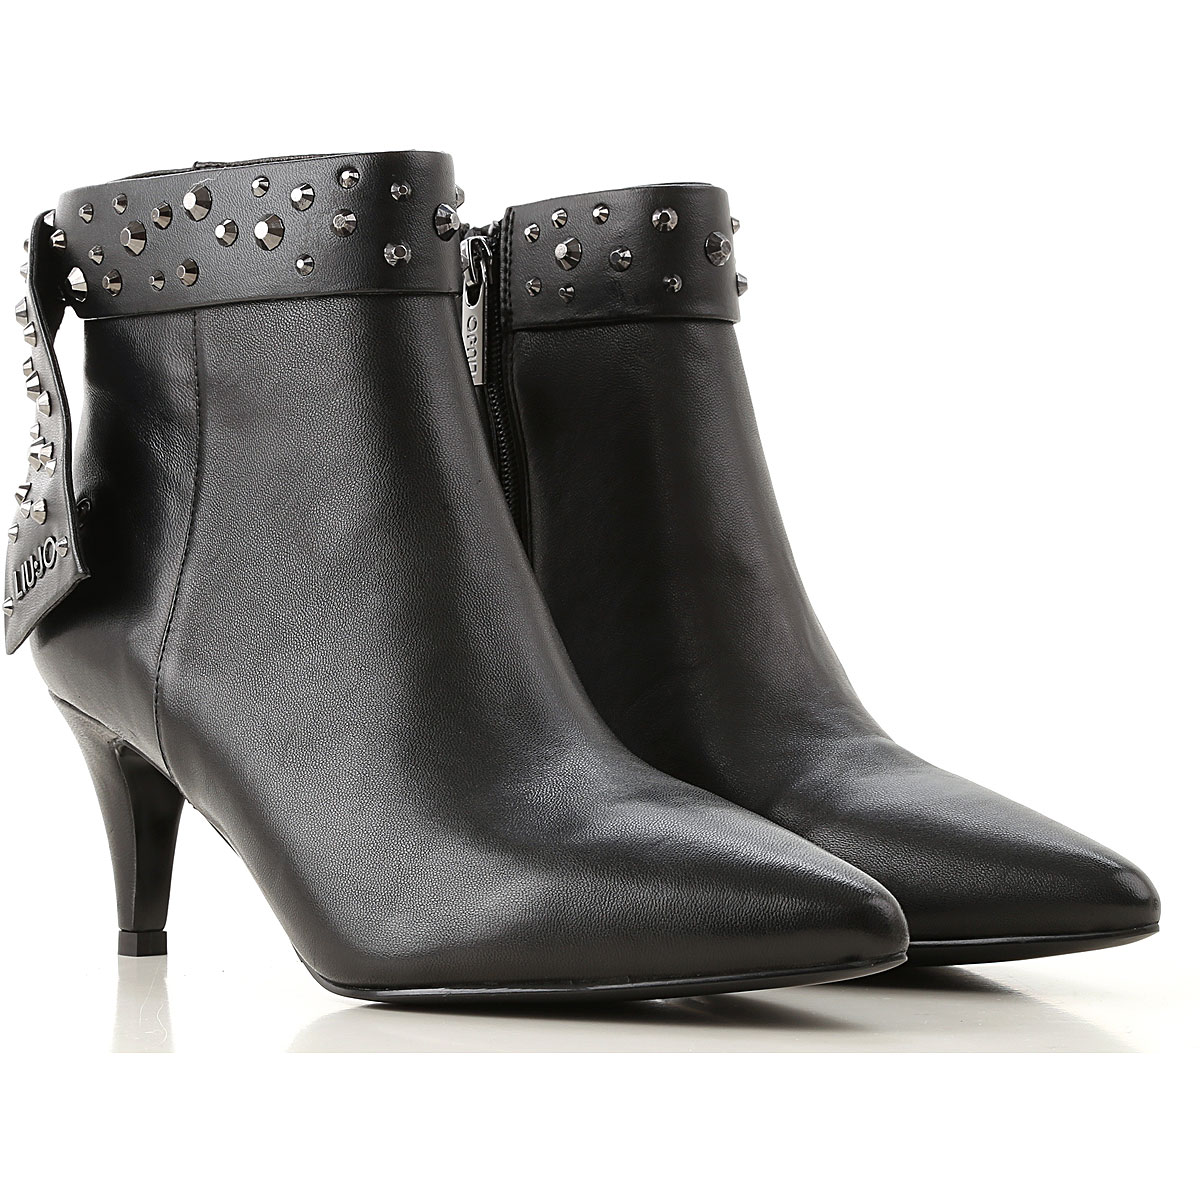 Liu Jo Boots for Women, Booties, Black, Leather, 2019, 10 6 7 9